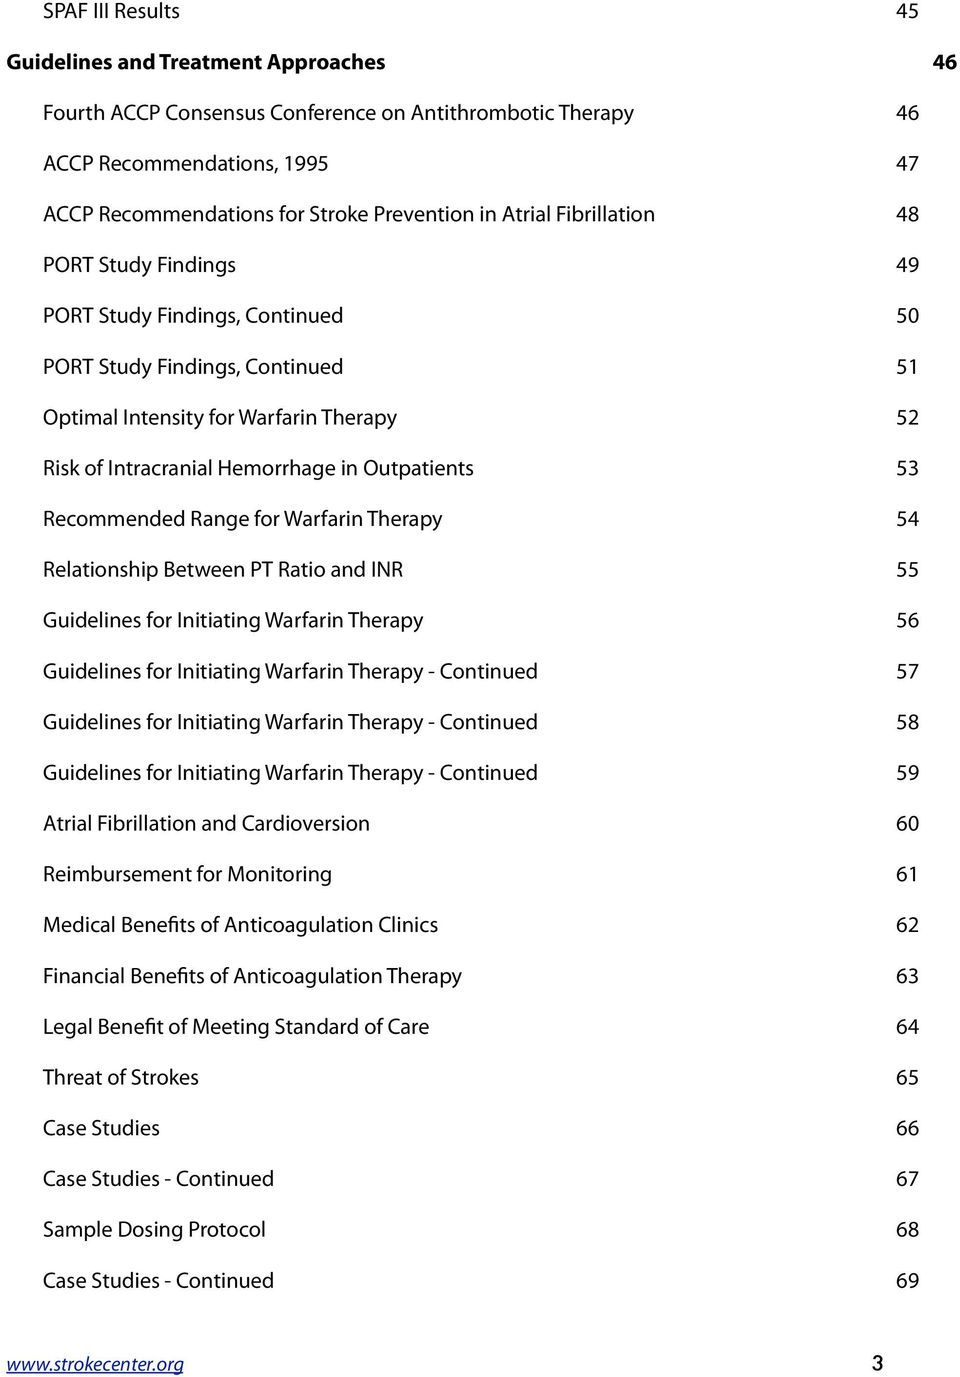 Outpatients 53 Recommended Range for Warfarin Therapy 54 Relationship Between PT Ratio and INR 55 Guidelines for Initiating Warfarin Therapy 56 Guidelines for Initiating Warfarin Therapy - Continued